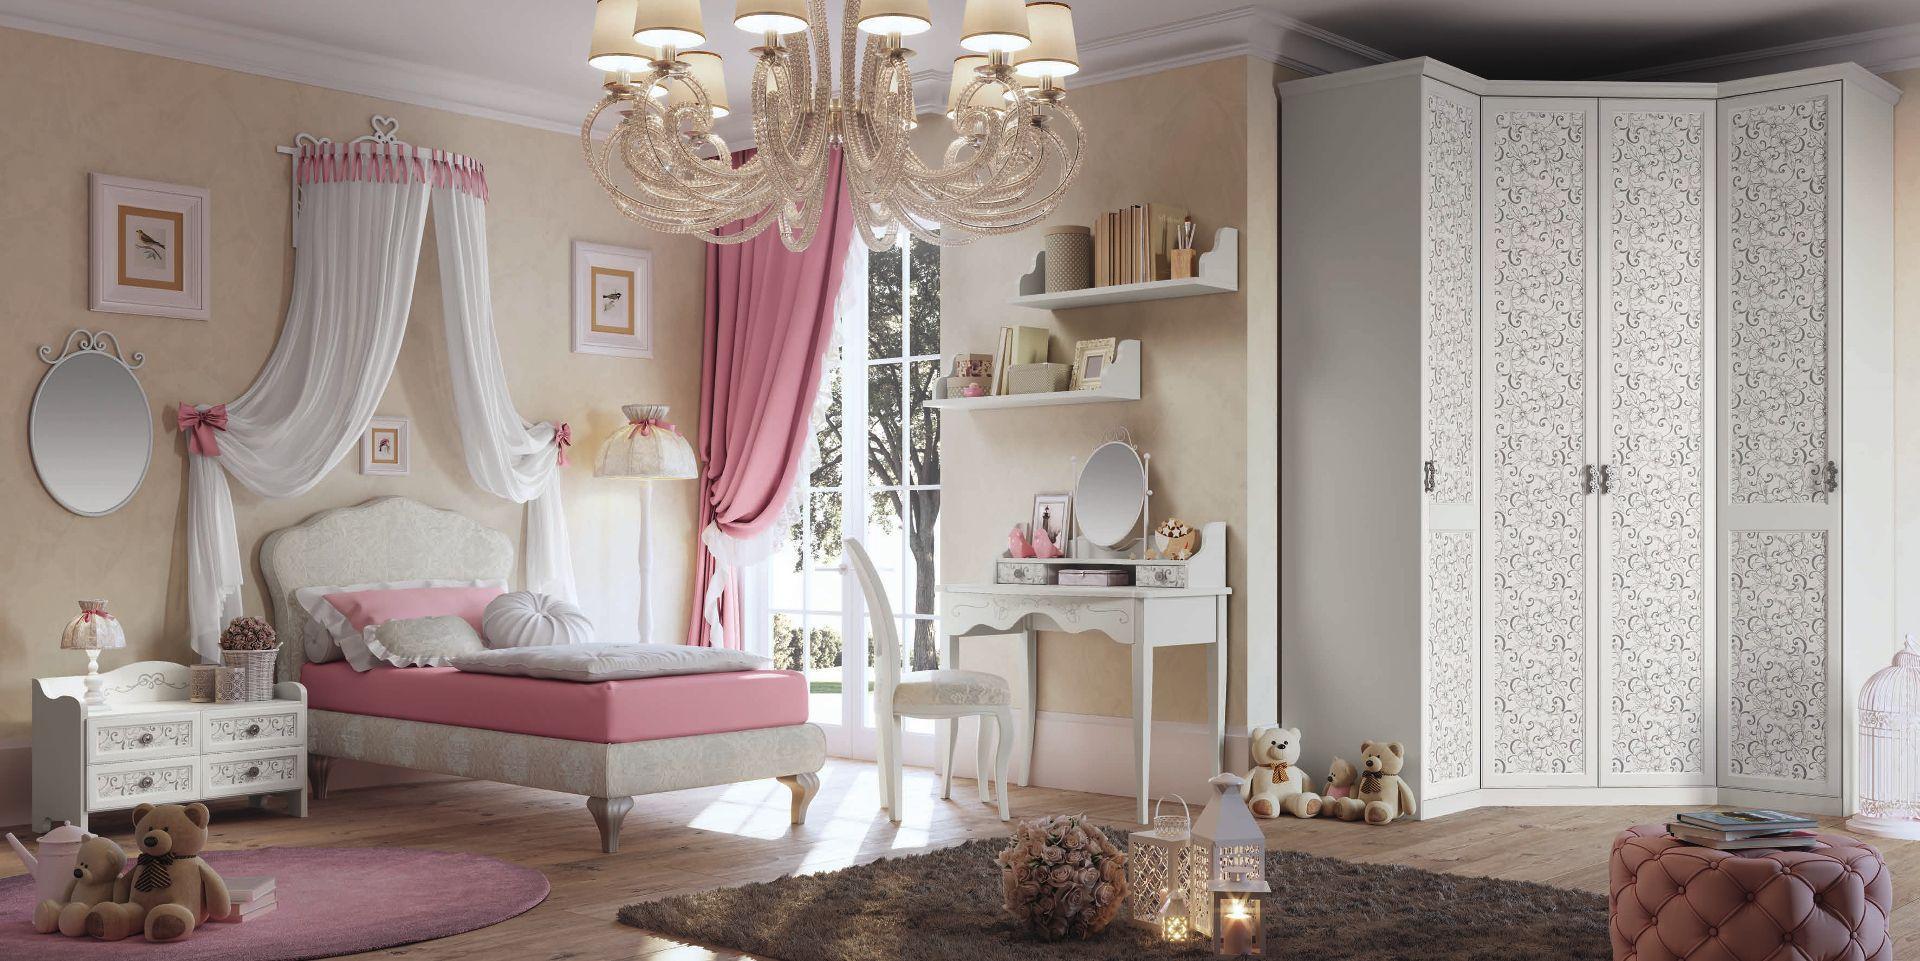 Luxury Collection By Effedue Camerette Effedue Camerette Is An